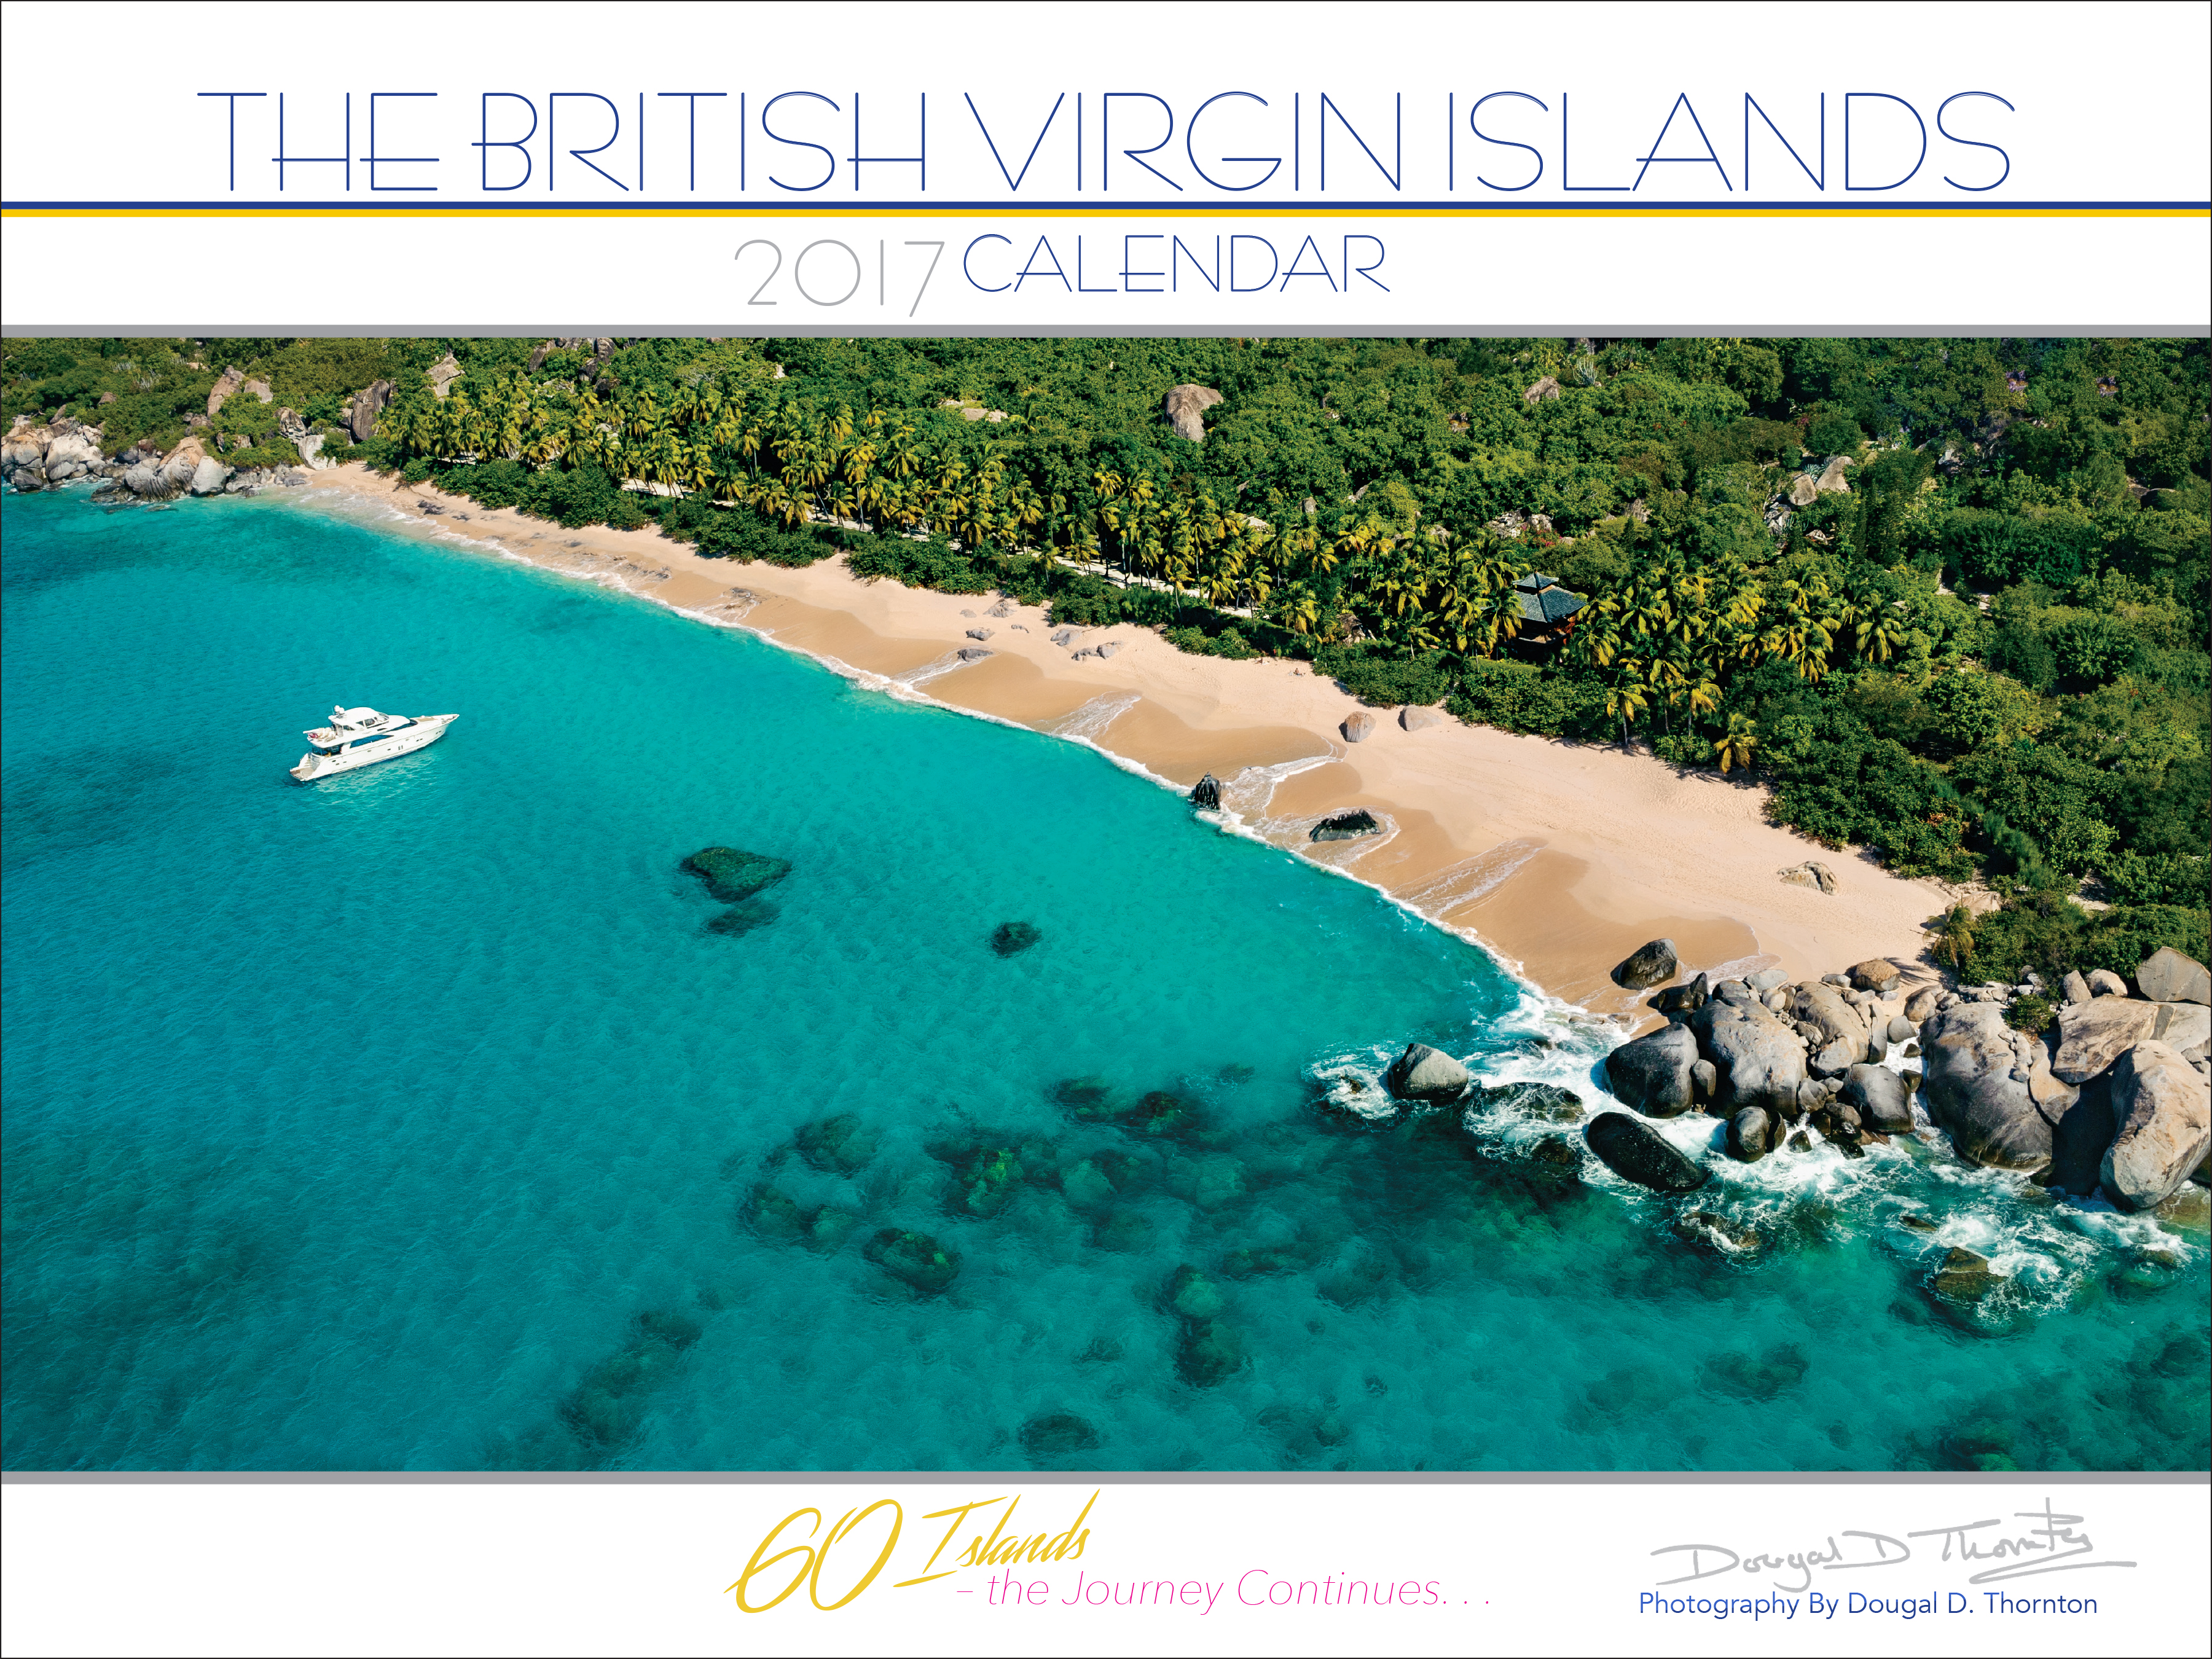 dating sites british virgin islands With free membership you can create your own profile, share photos and videos, contact and flirt with other us virgin islands singles, visit our live chat rooms and interest groups, use instant messaging and much more.